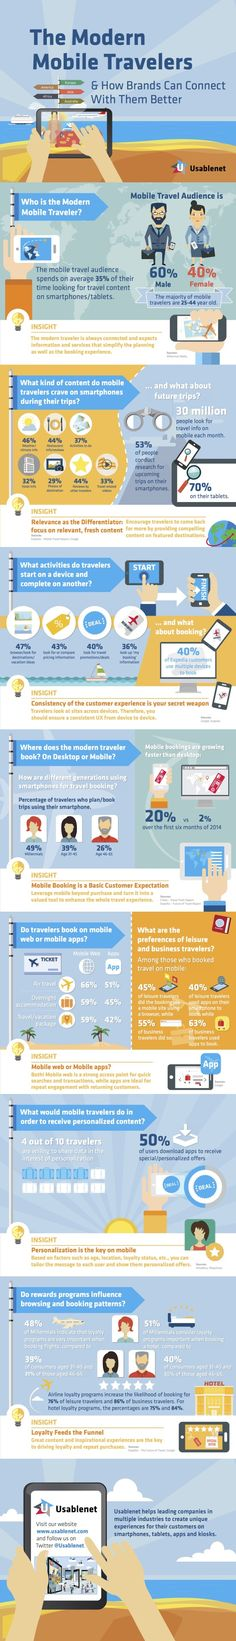 How brands can connect with modern mobile travelers [INFOGRAPHIC] - What kind of travel content are mobile travelers looking for when they use their devices? Marketing Digital, Mobile Marketing, Online Marketing, Business Marketing, Business Tips, Hotel App, Future Of Marketing, Digital Strategy, Travel And Tourism